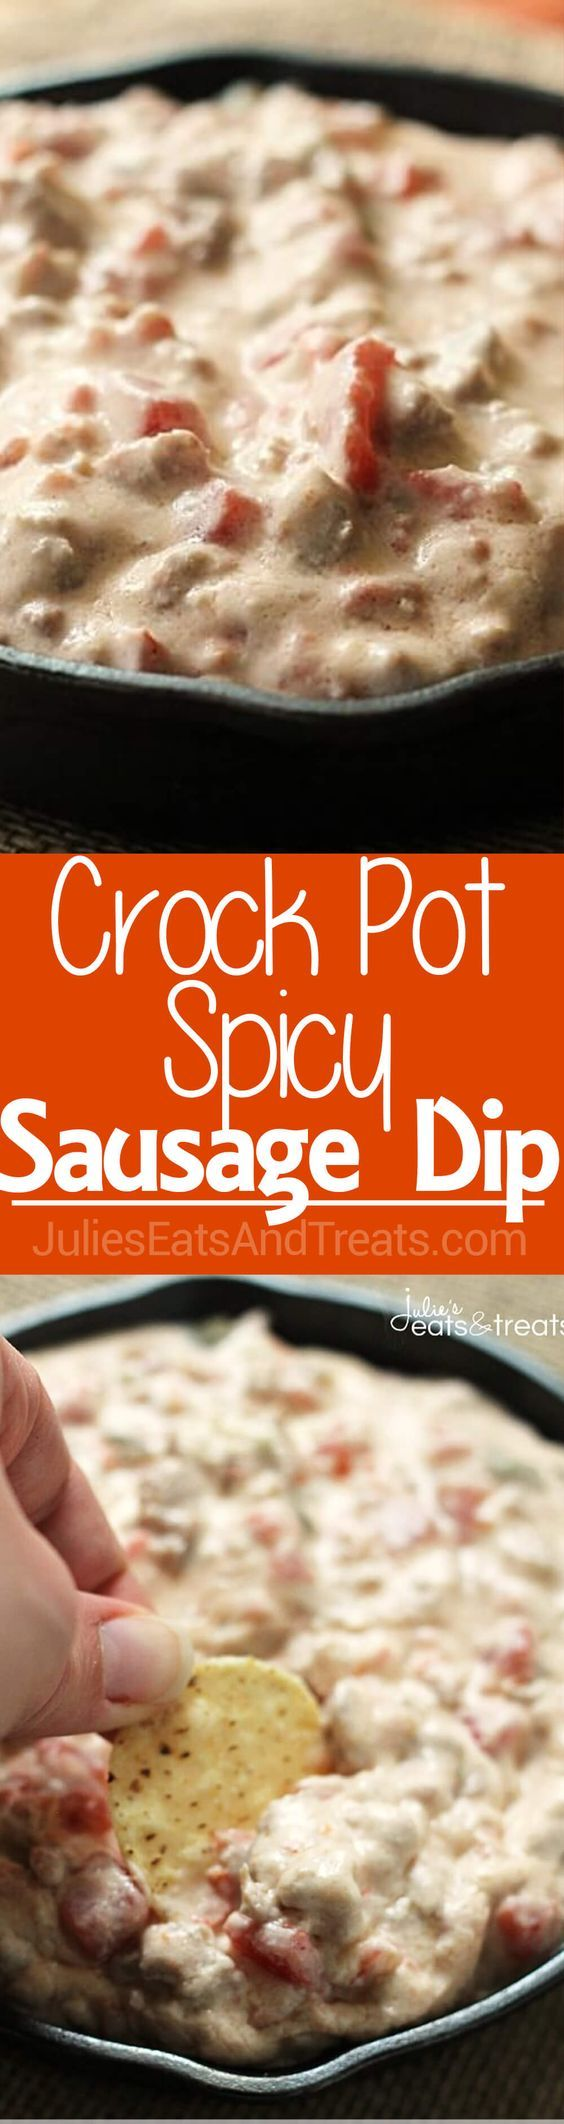 Crock Pot Spicy Sausage Dip ~ Creamy, Delicious Dip Loaded with Sausage and a Kick! ~ http://www.julieseatsandtreats.com